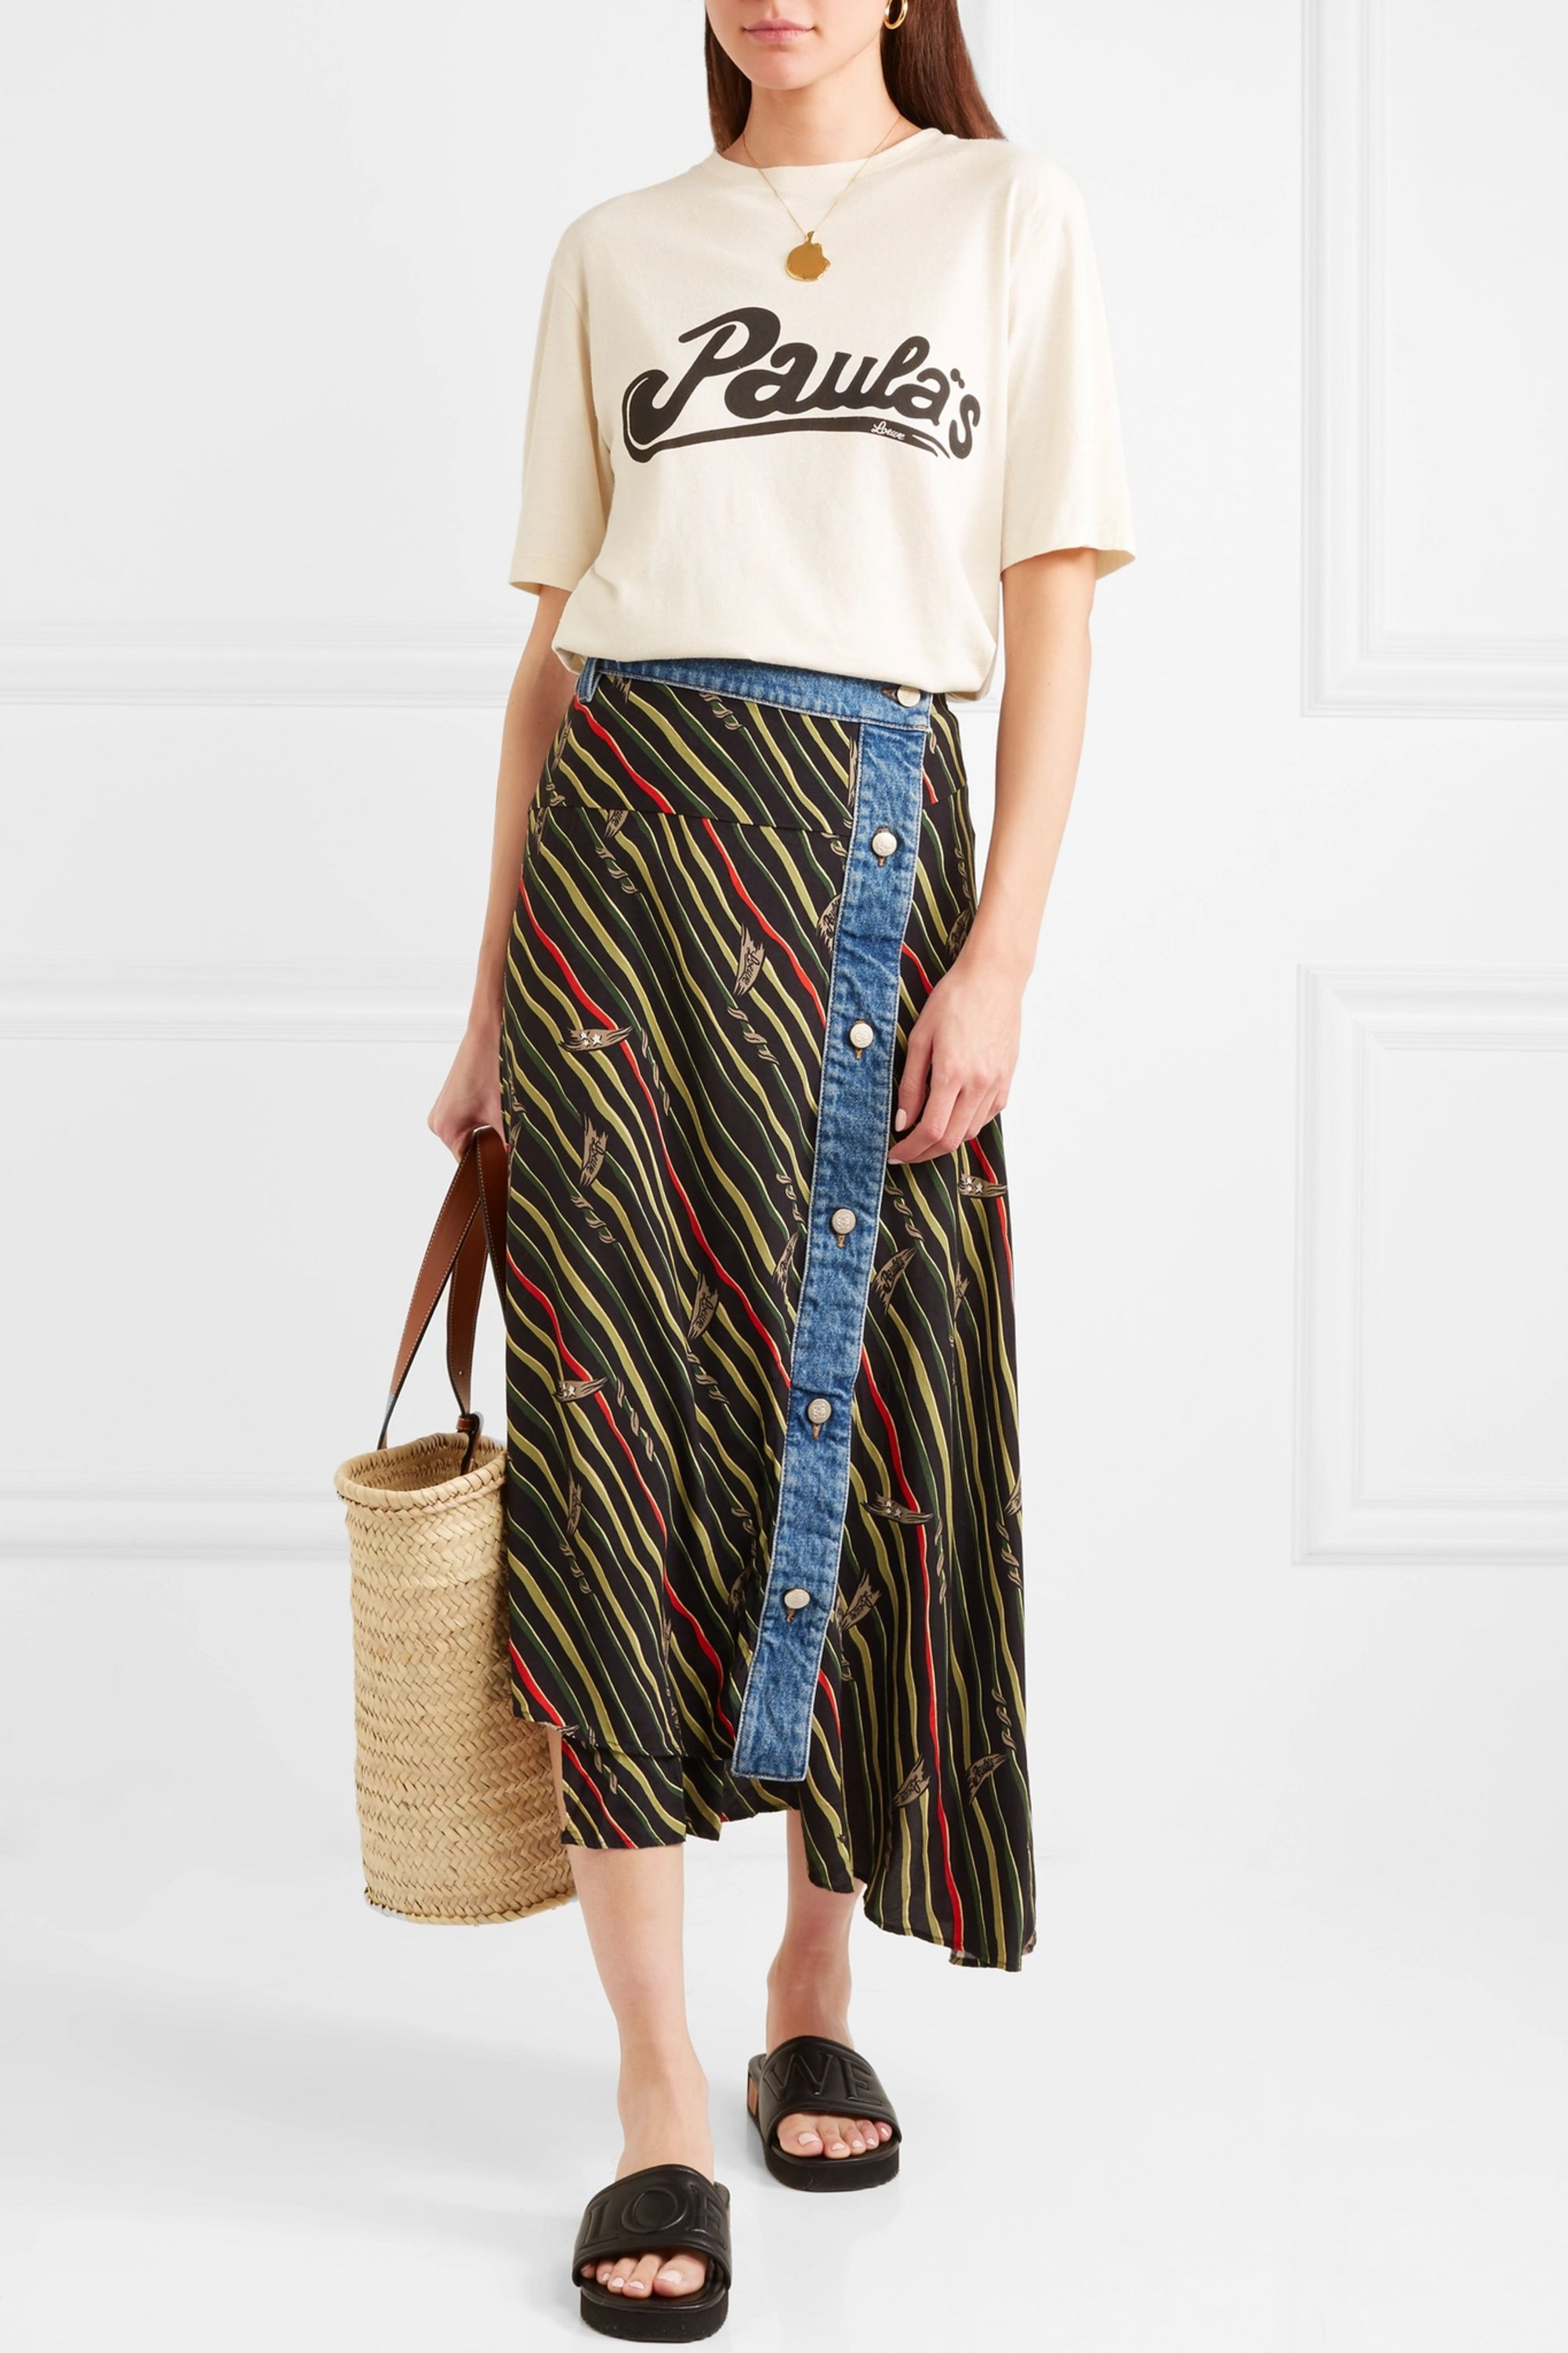 Loewe + Paula's Ibiza oversized printed cotton and silk-blend jersey T-shirt